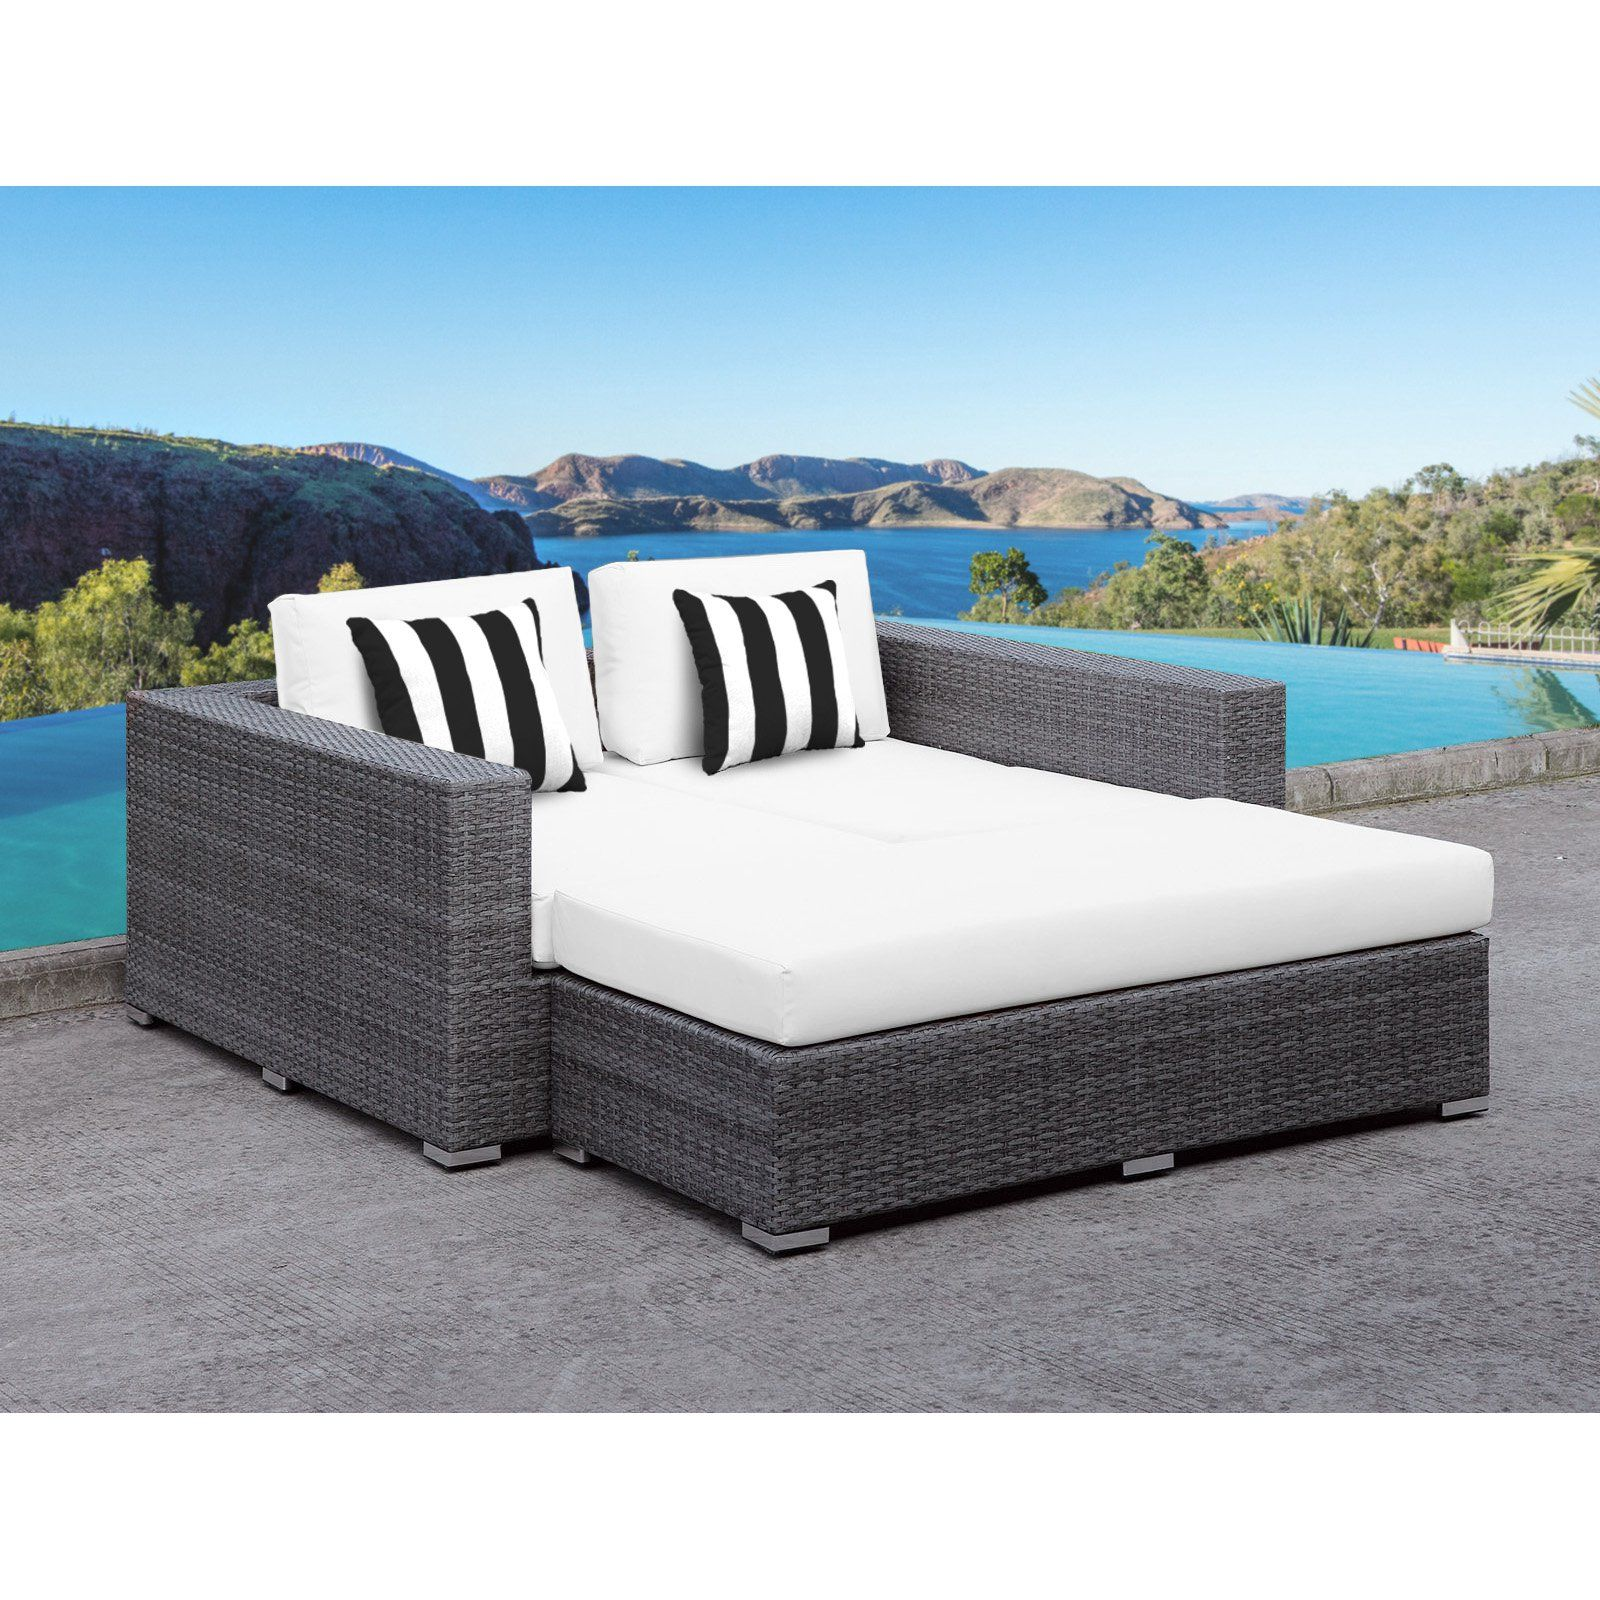 Solis lusso deep seated wicker 2 piece outdoor daybed set white black white